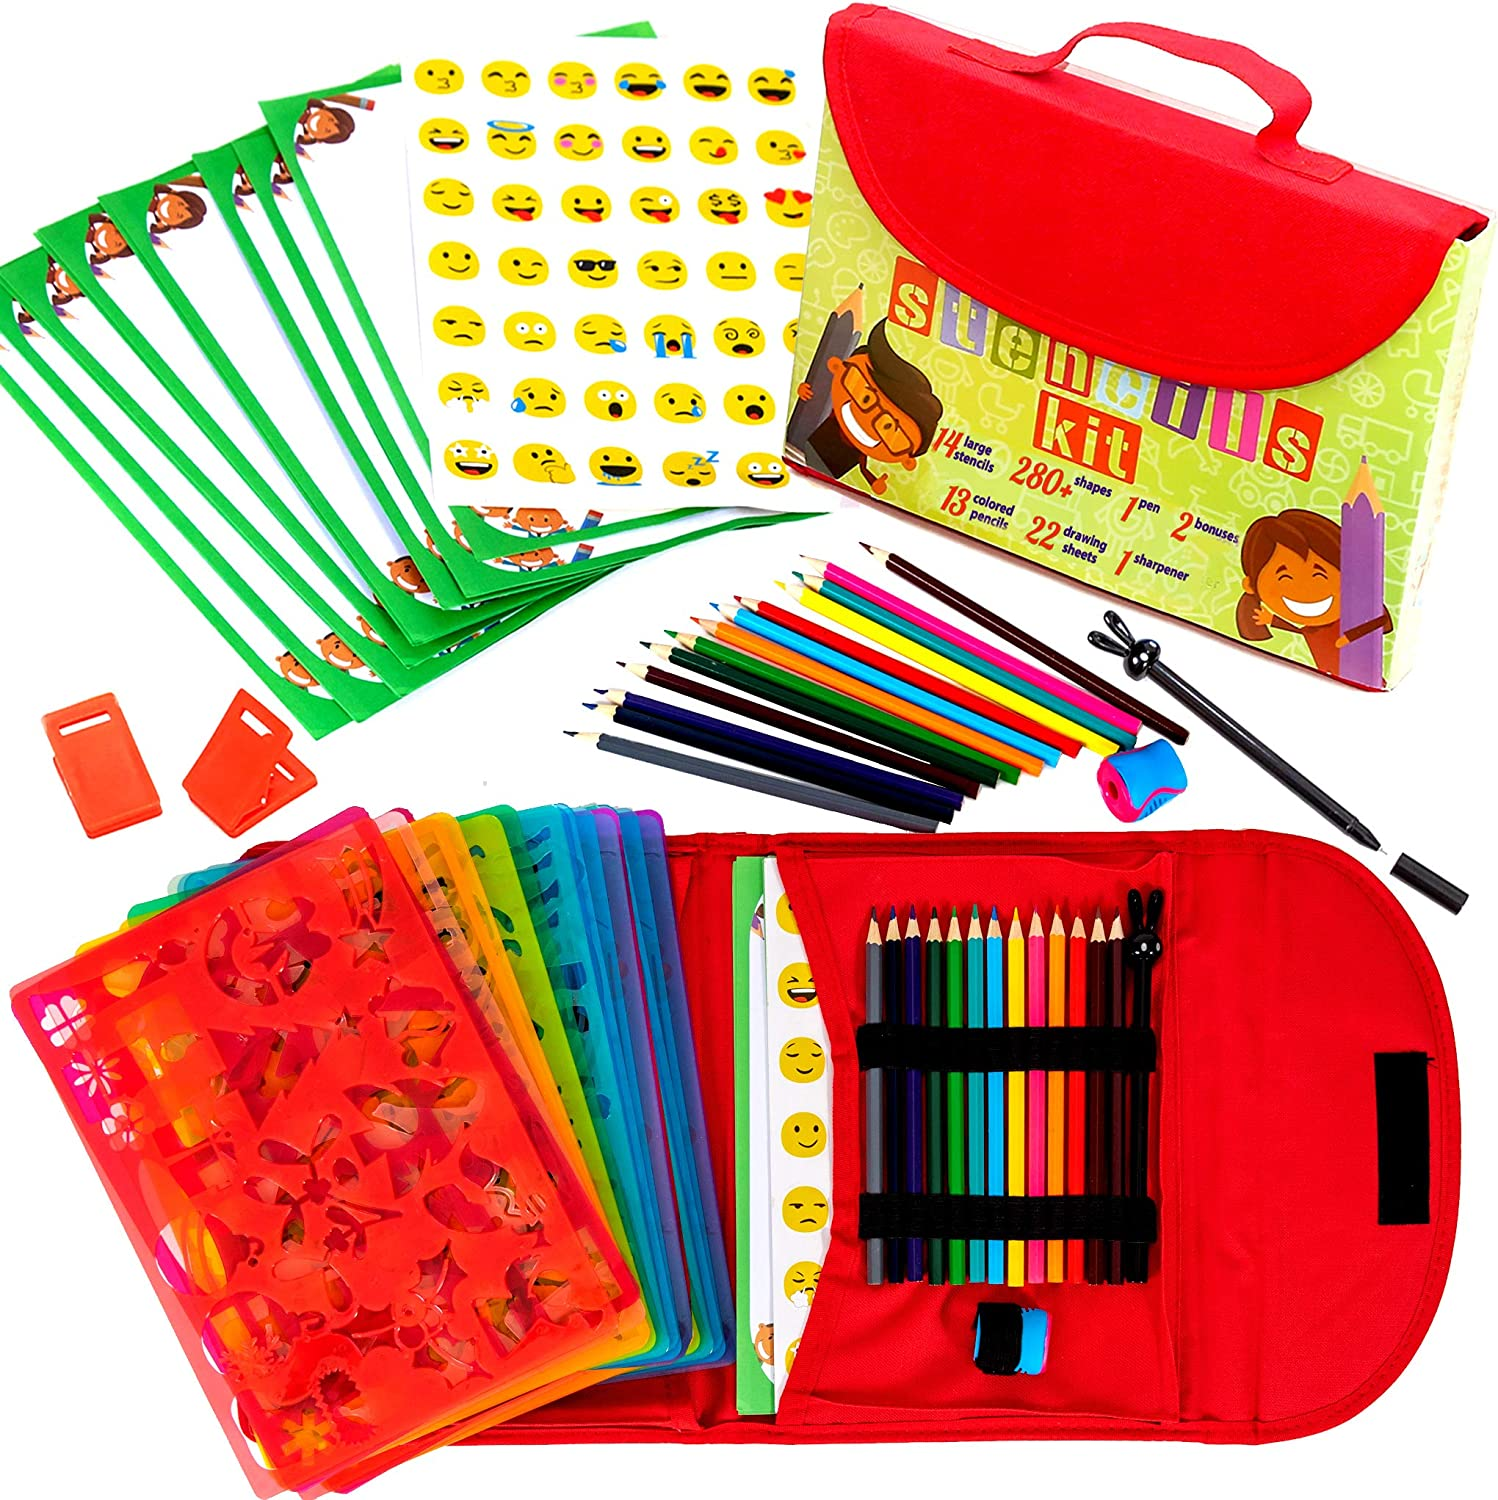 Drawing Stencils for Kids Kit & Carry Case – Child-Safe with 55 Pieces, Stencil Set with 280+ Shapes, Colored Pencils, Paper, Etc.– Travel Art Supplies for Creativity, Learning & Fun, Ideal Kids Gift